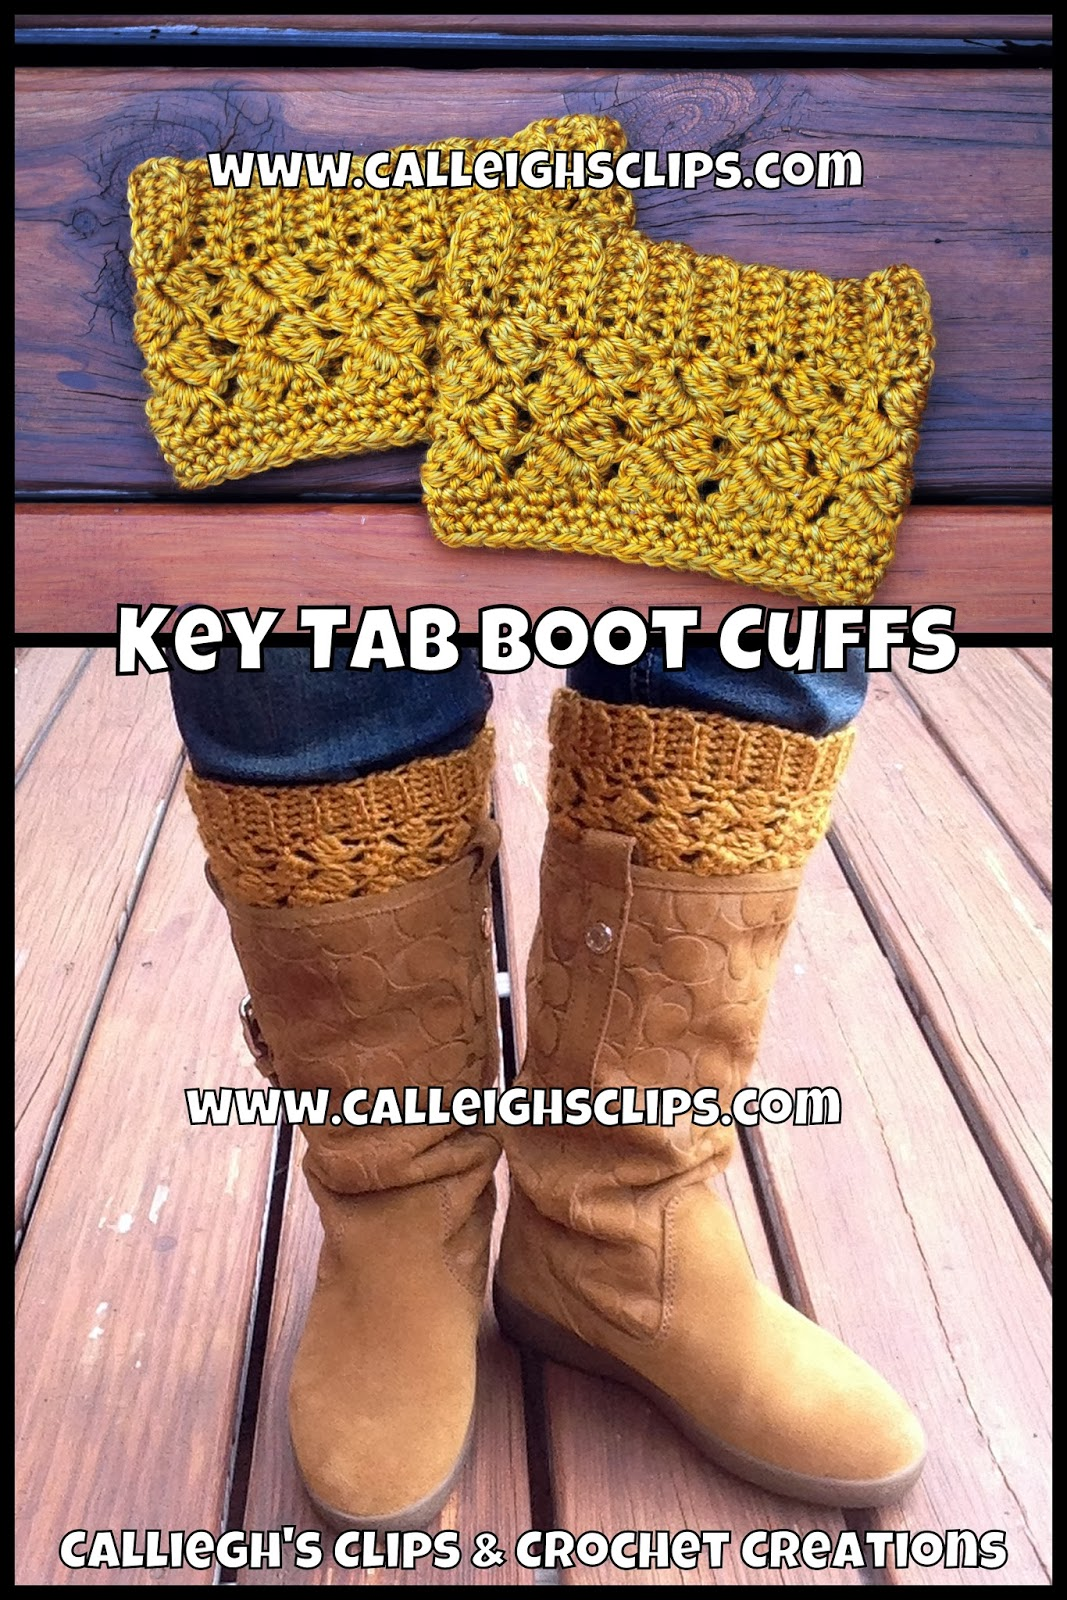 Crochet Patterns I Can Make And Sell : Calleighs Clips & Crochet Creations: Free Crochet Pattern ...